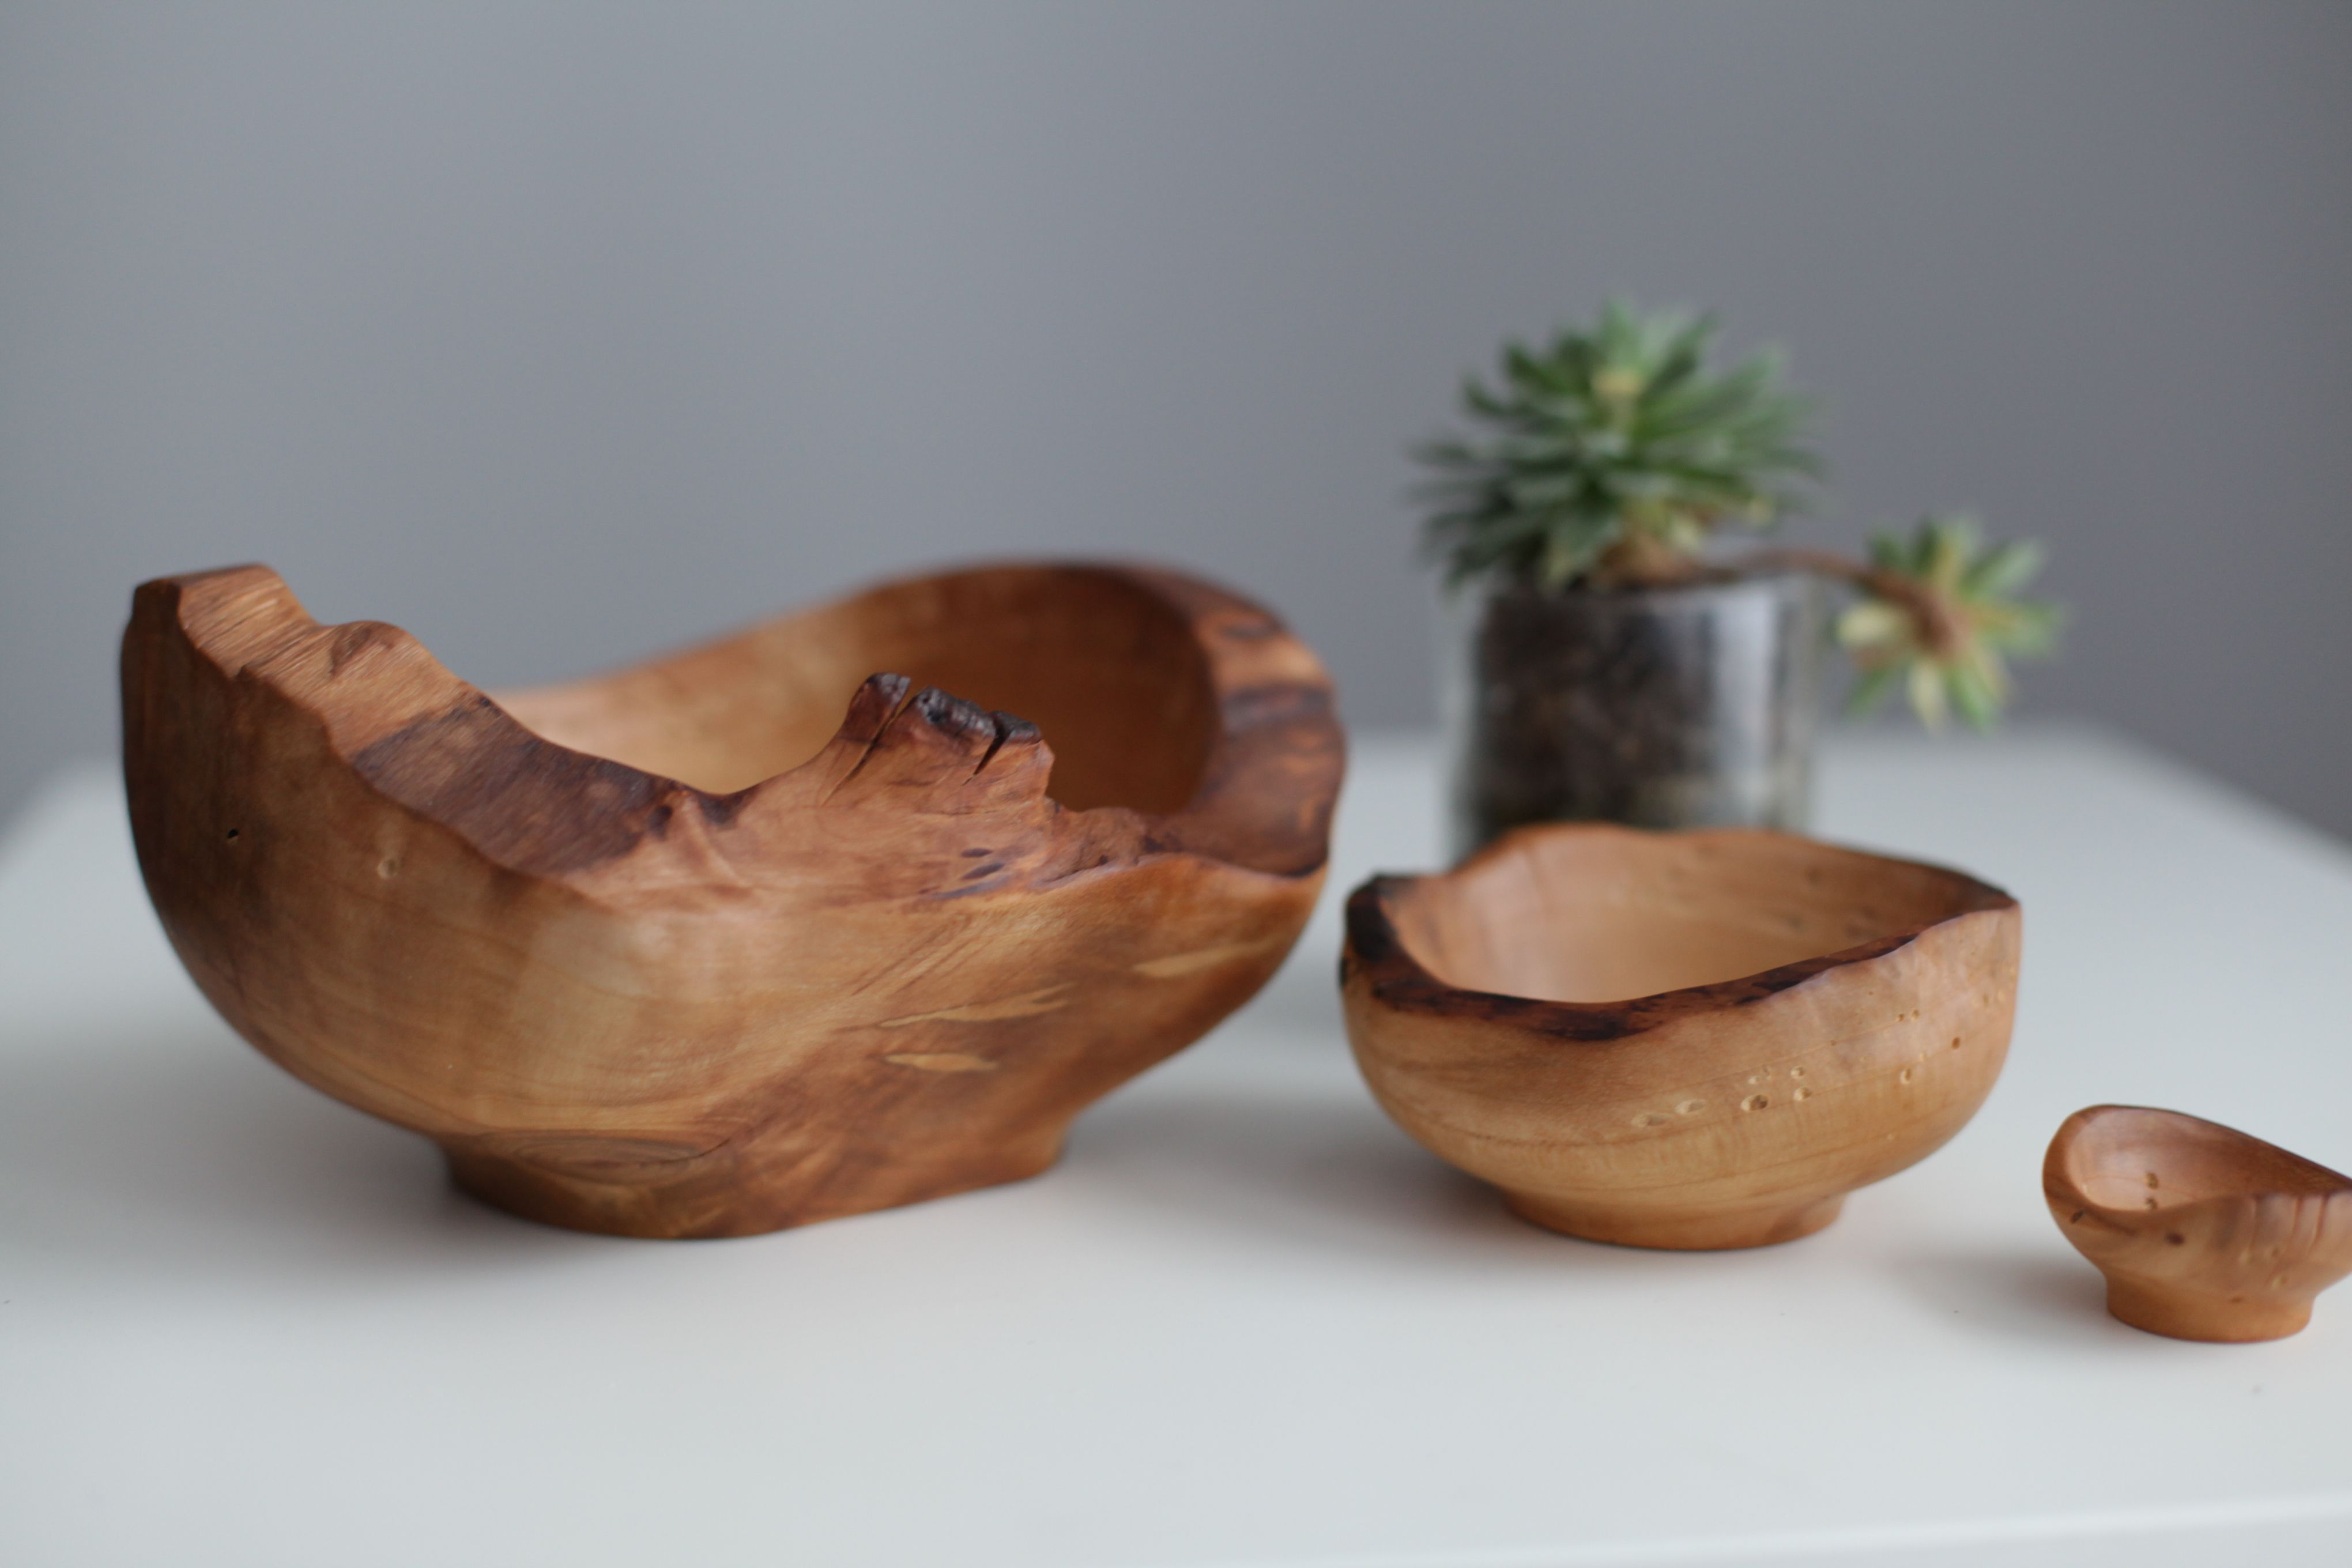 Cherry wooden bowls set valentines day gift unique decorative bowls rustic home decor hand turned bowl